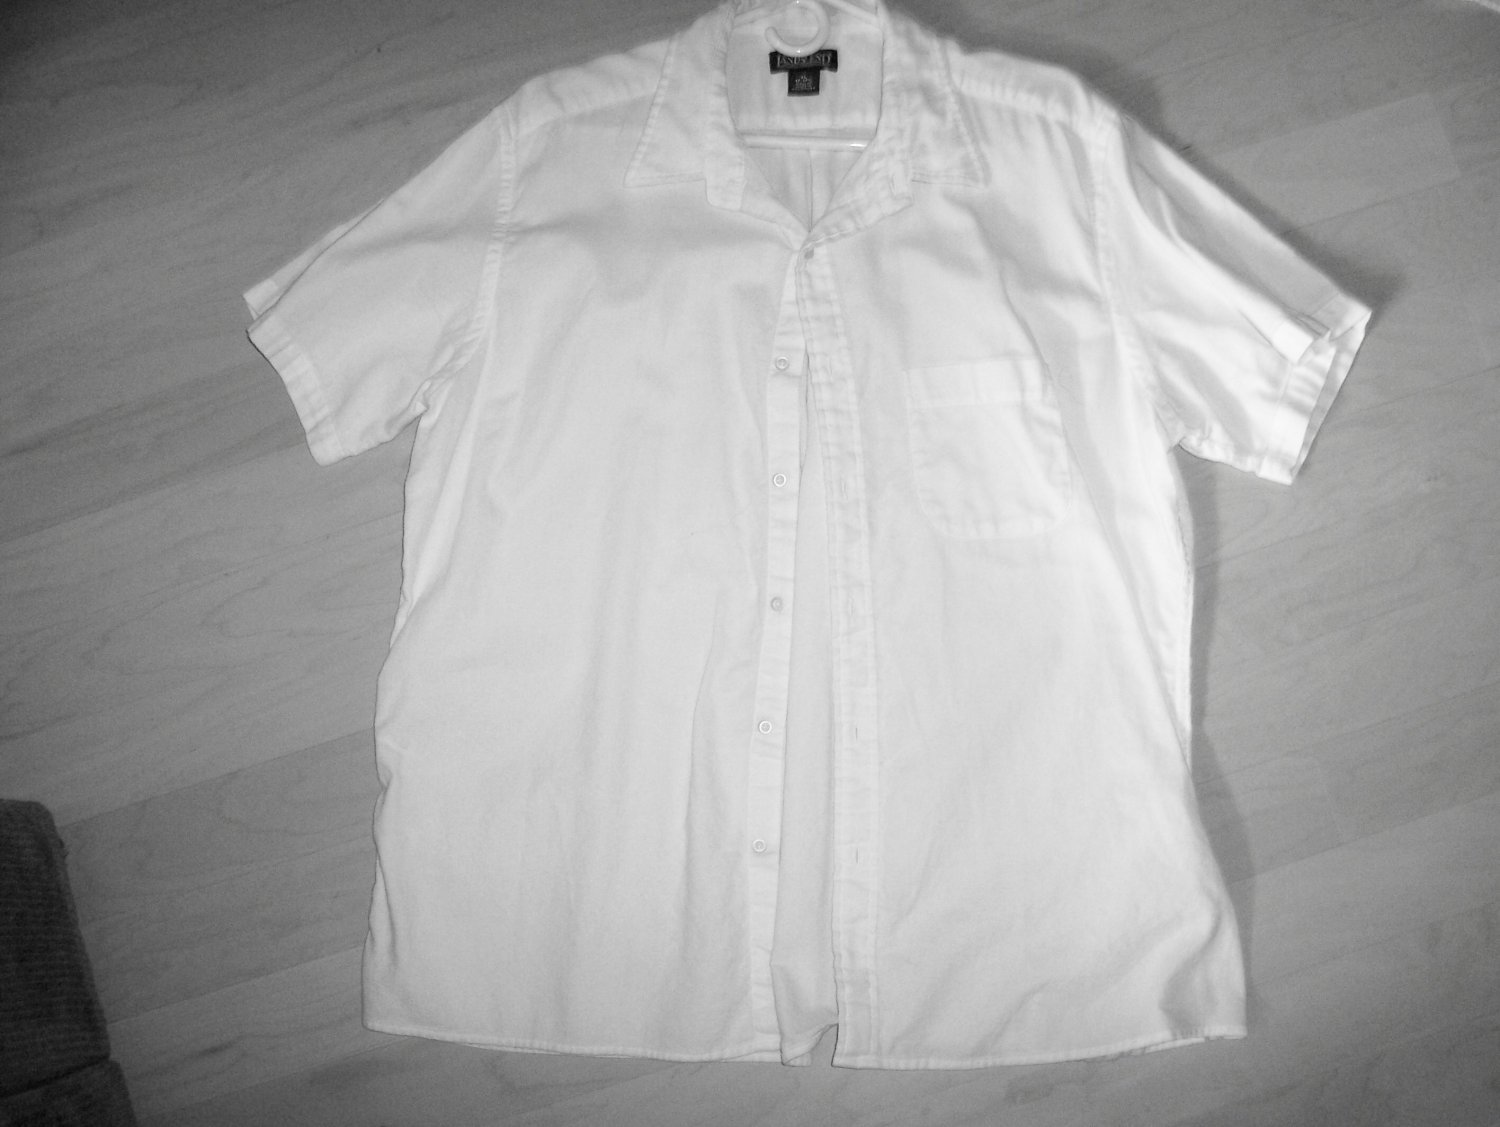 Men's White Short Sleeve Shirt by Lands End BNK596